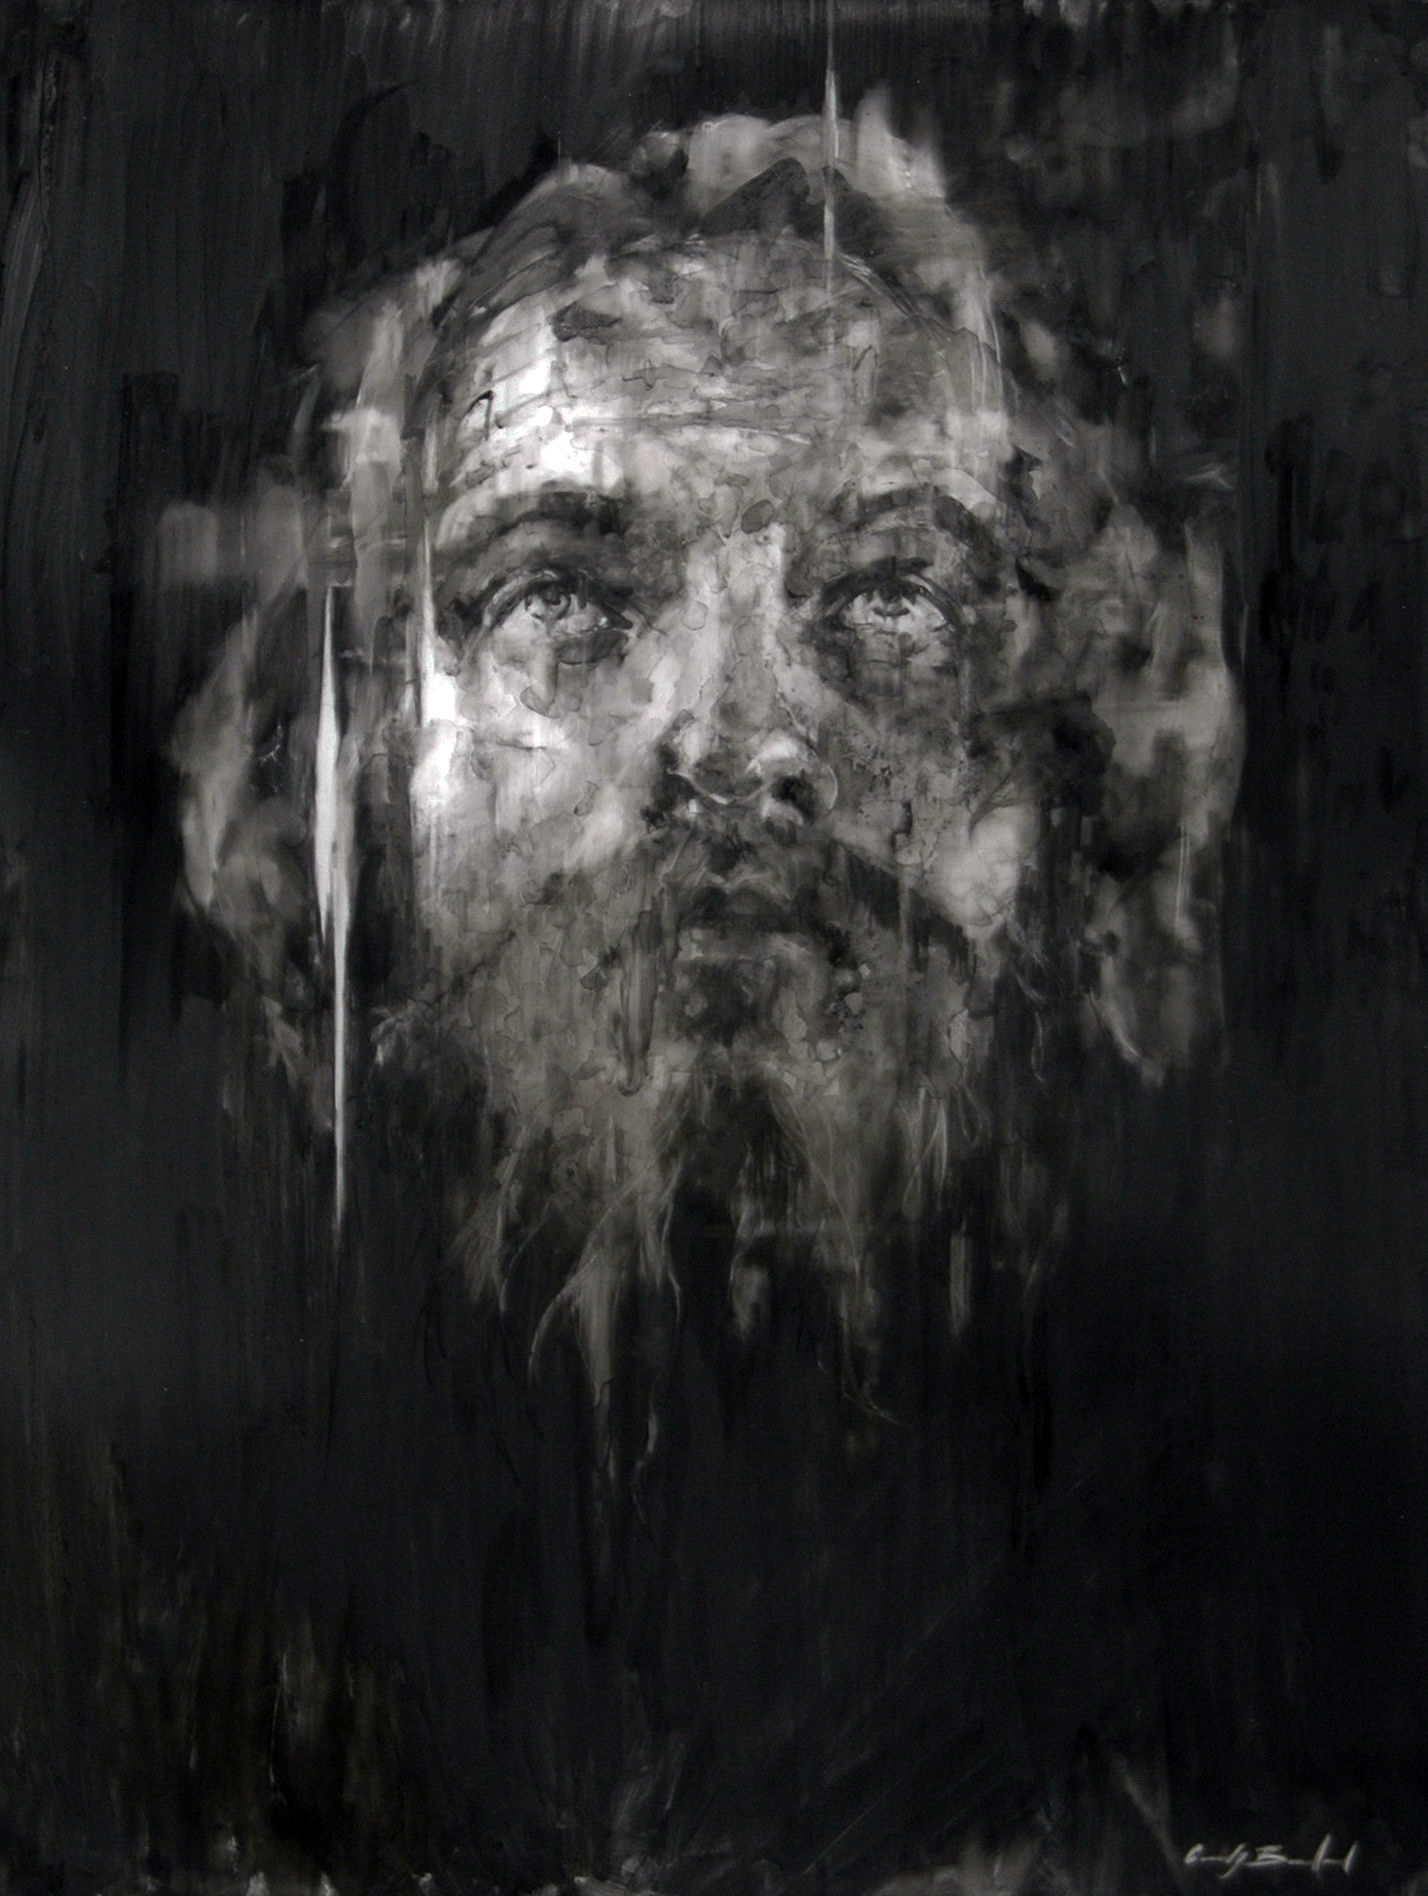 """""""Stephen"""", 2012, charcoal on mylar, 24x18 in."""